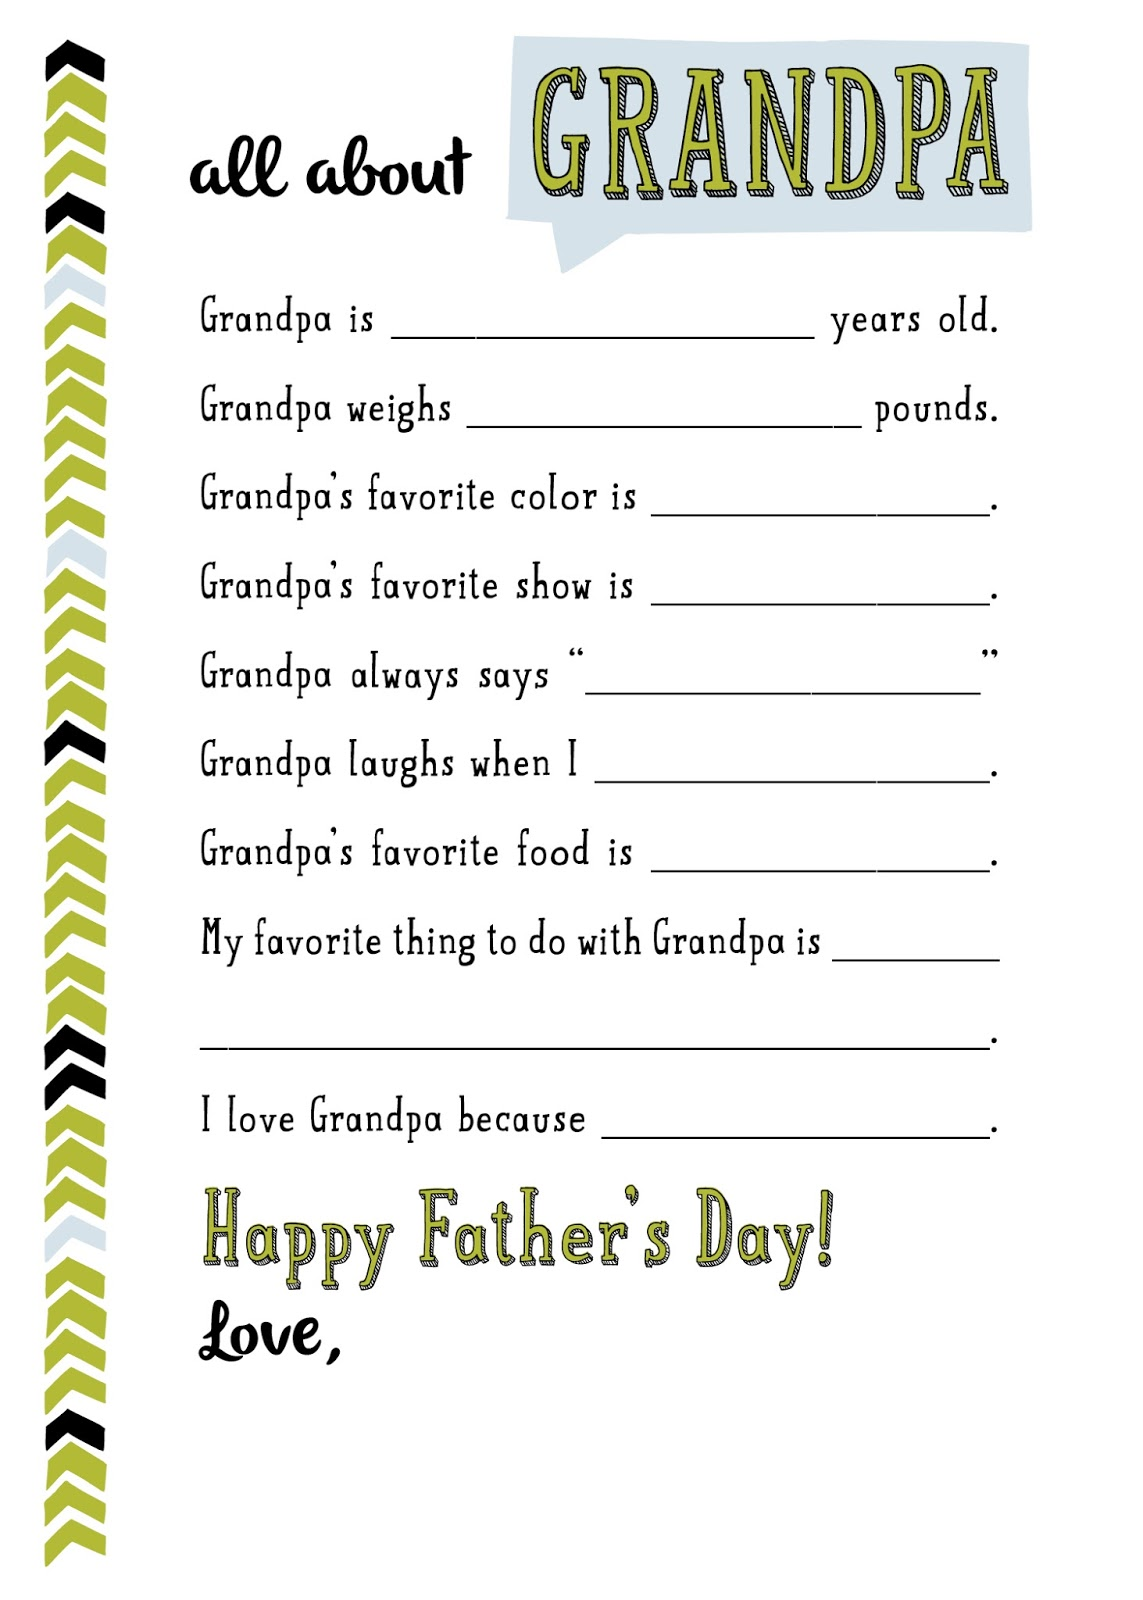 image relating to All About My Papa Printable called river bridge: all concerning father // free of charge printable